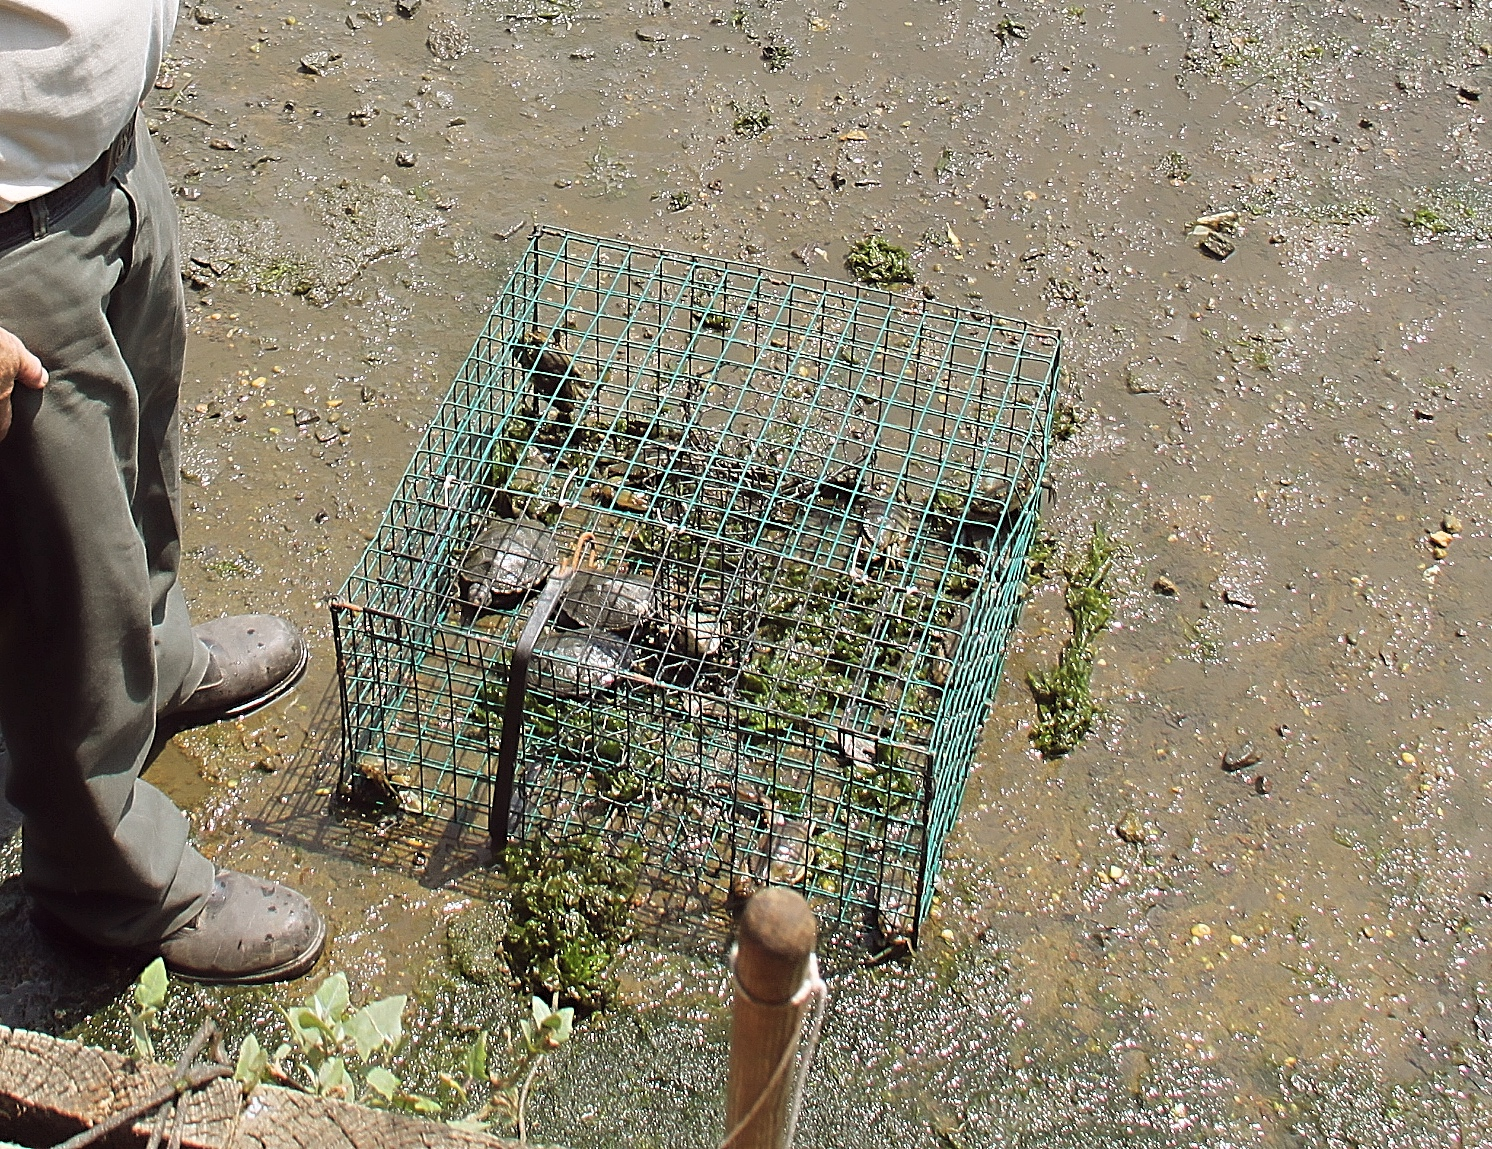 Several male diamondback terrapins found dead in a blue claw crab trap in the Navesink River, 2010.